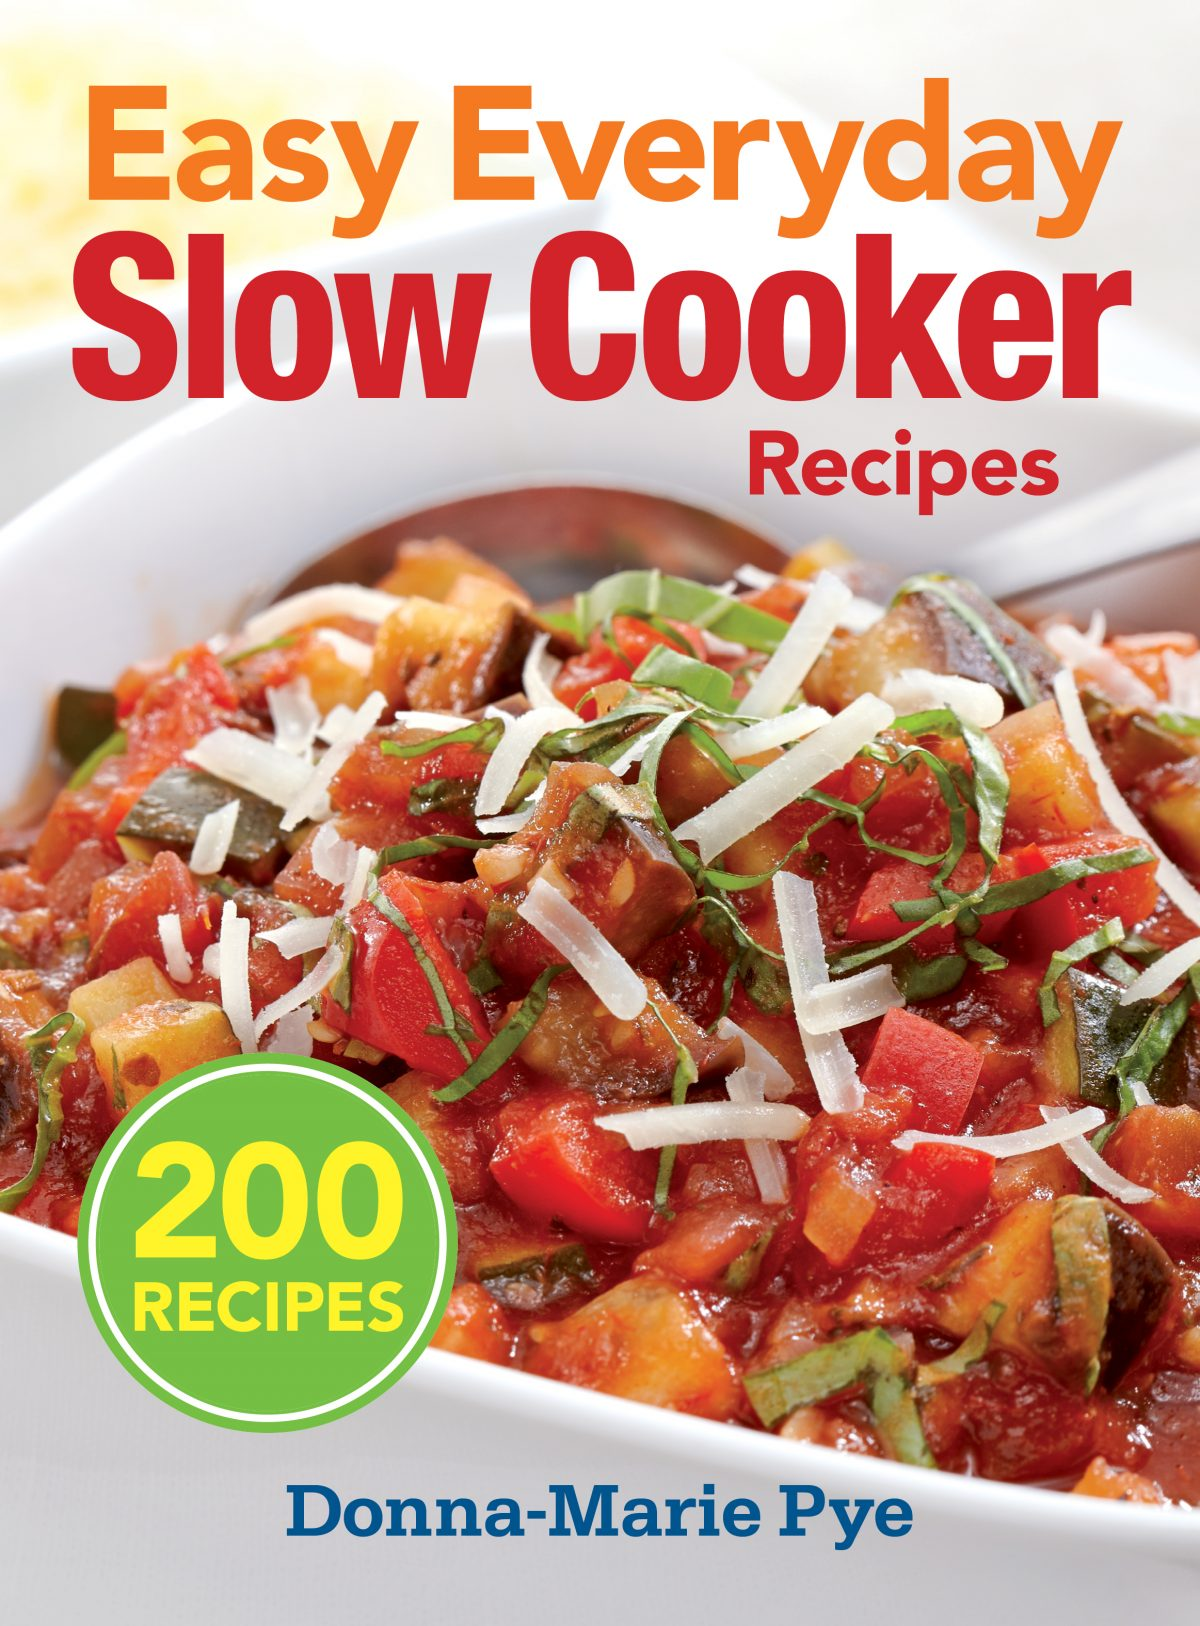 Easy Everyday Slow Cooker Recipes Review Joy Makin' Mamas